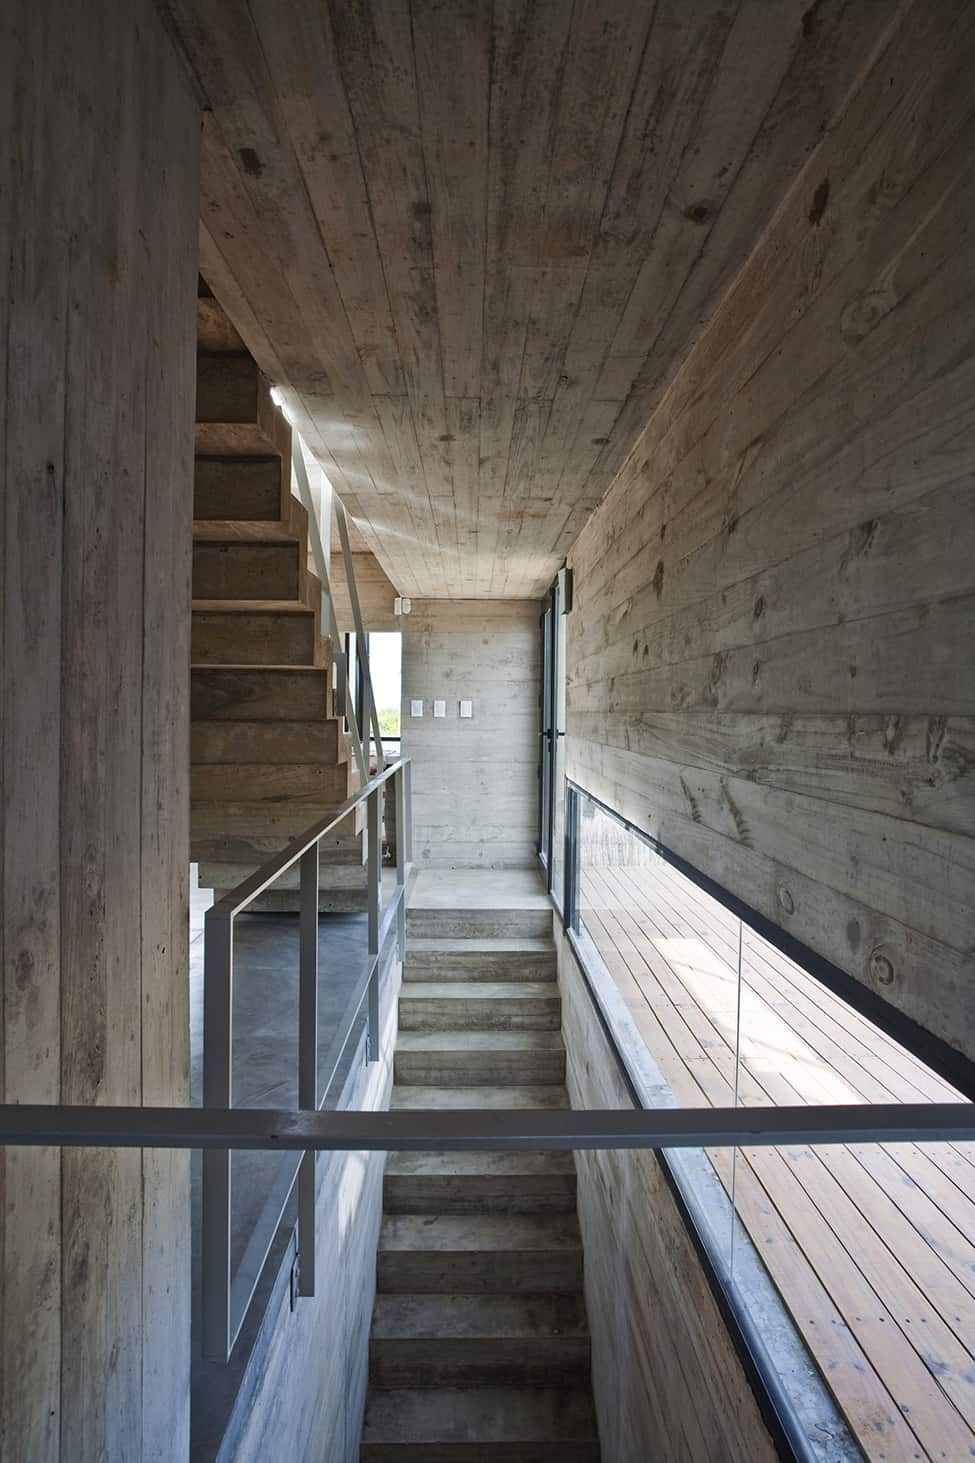 Industrial Aesthetic Values in a Beach Home by BAK Architects (23)